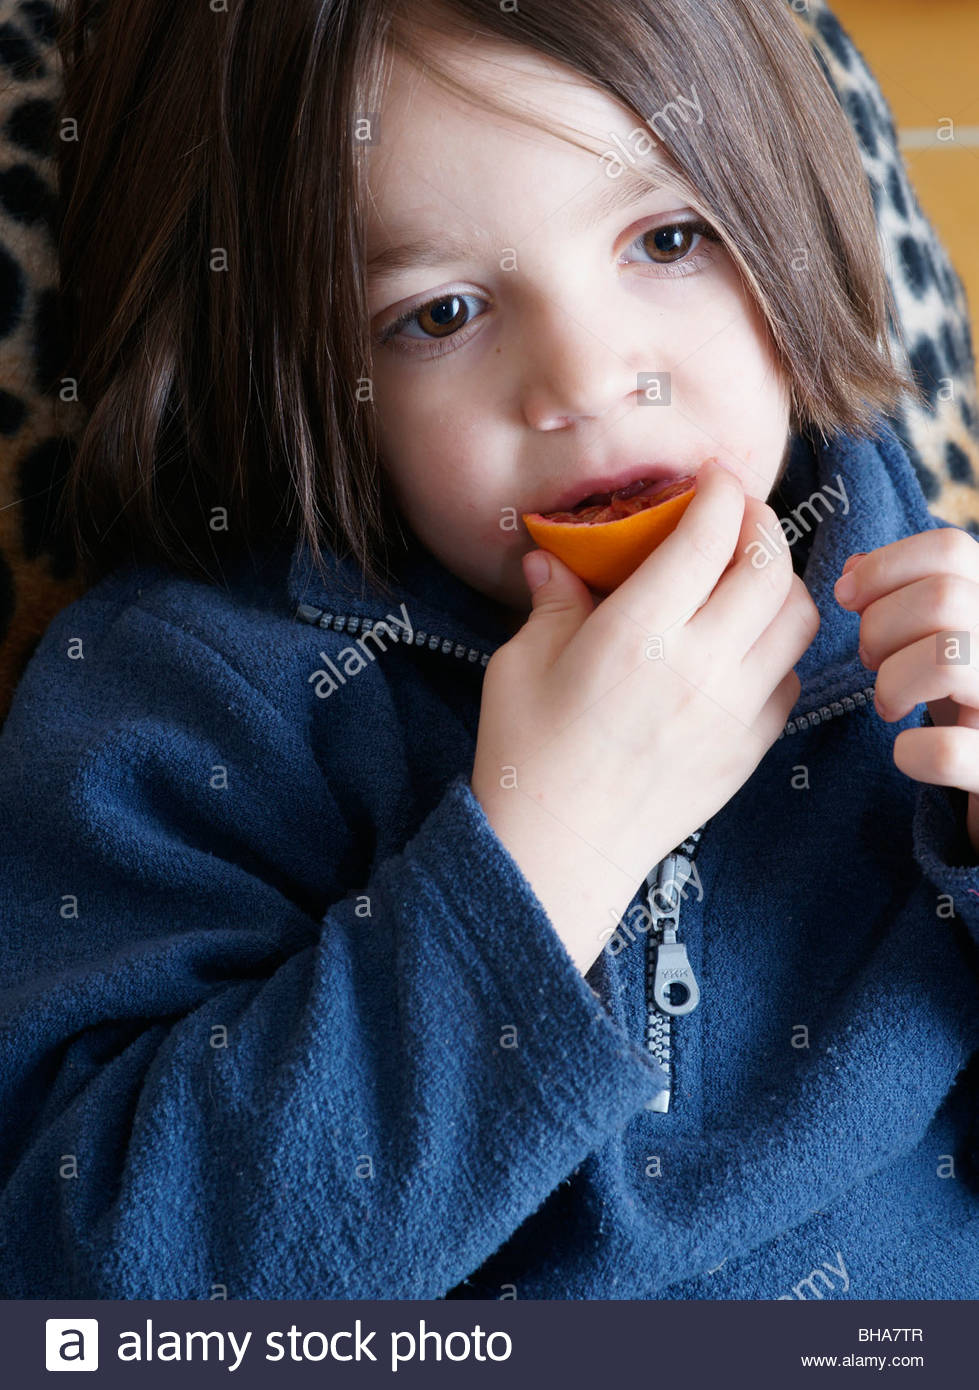 kids watching tv and eating. child children kid boy kids watching tv eating a slice of orange fruit kids and w